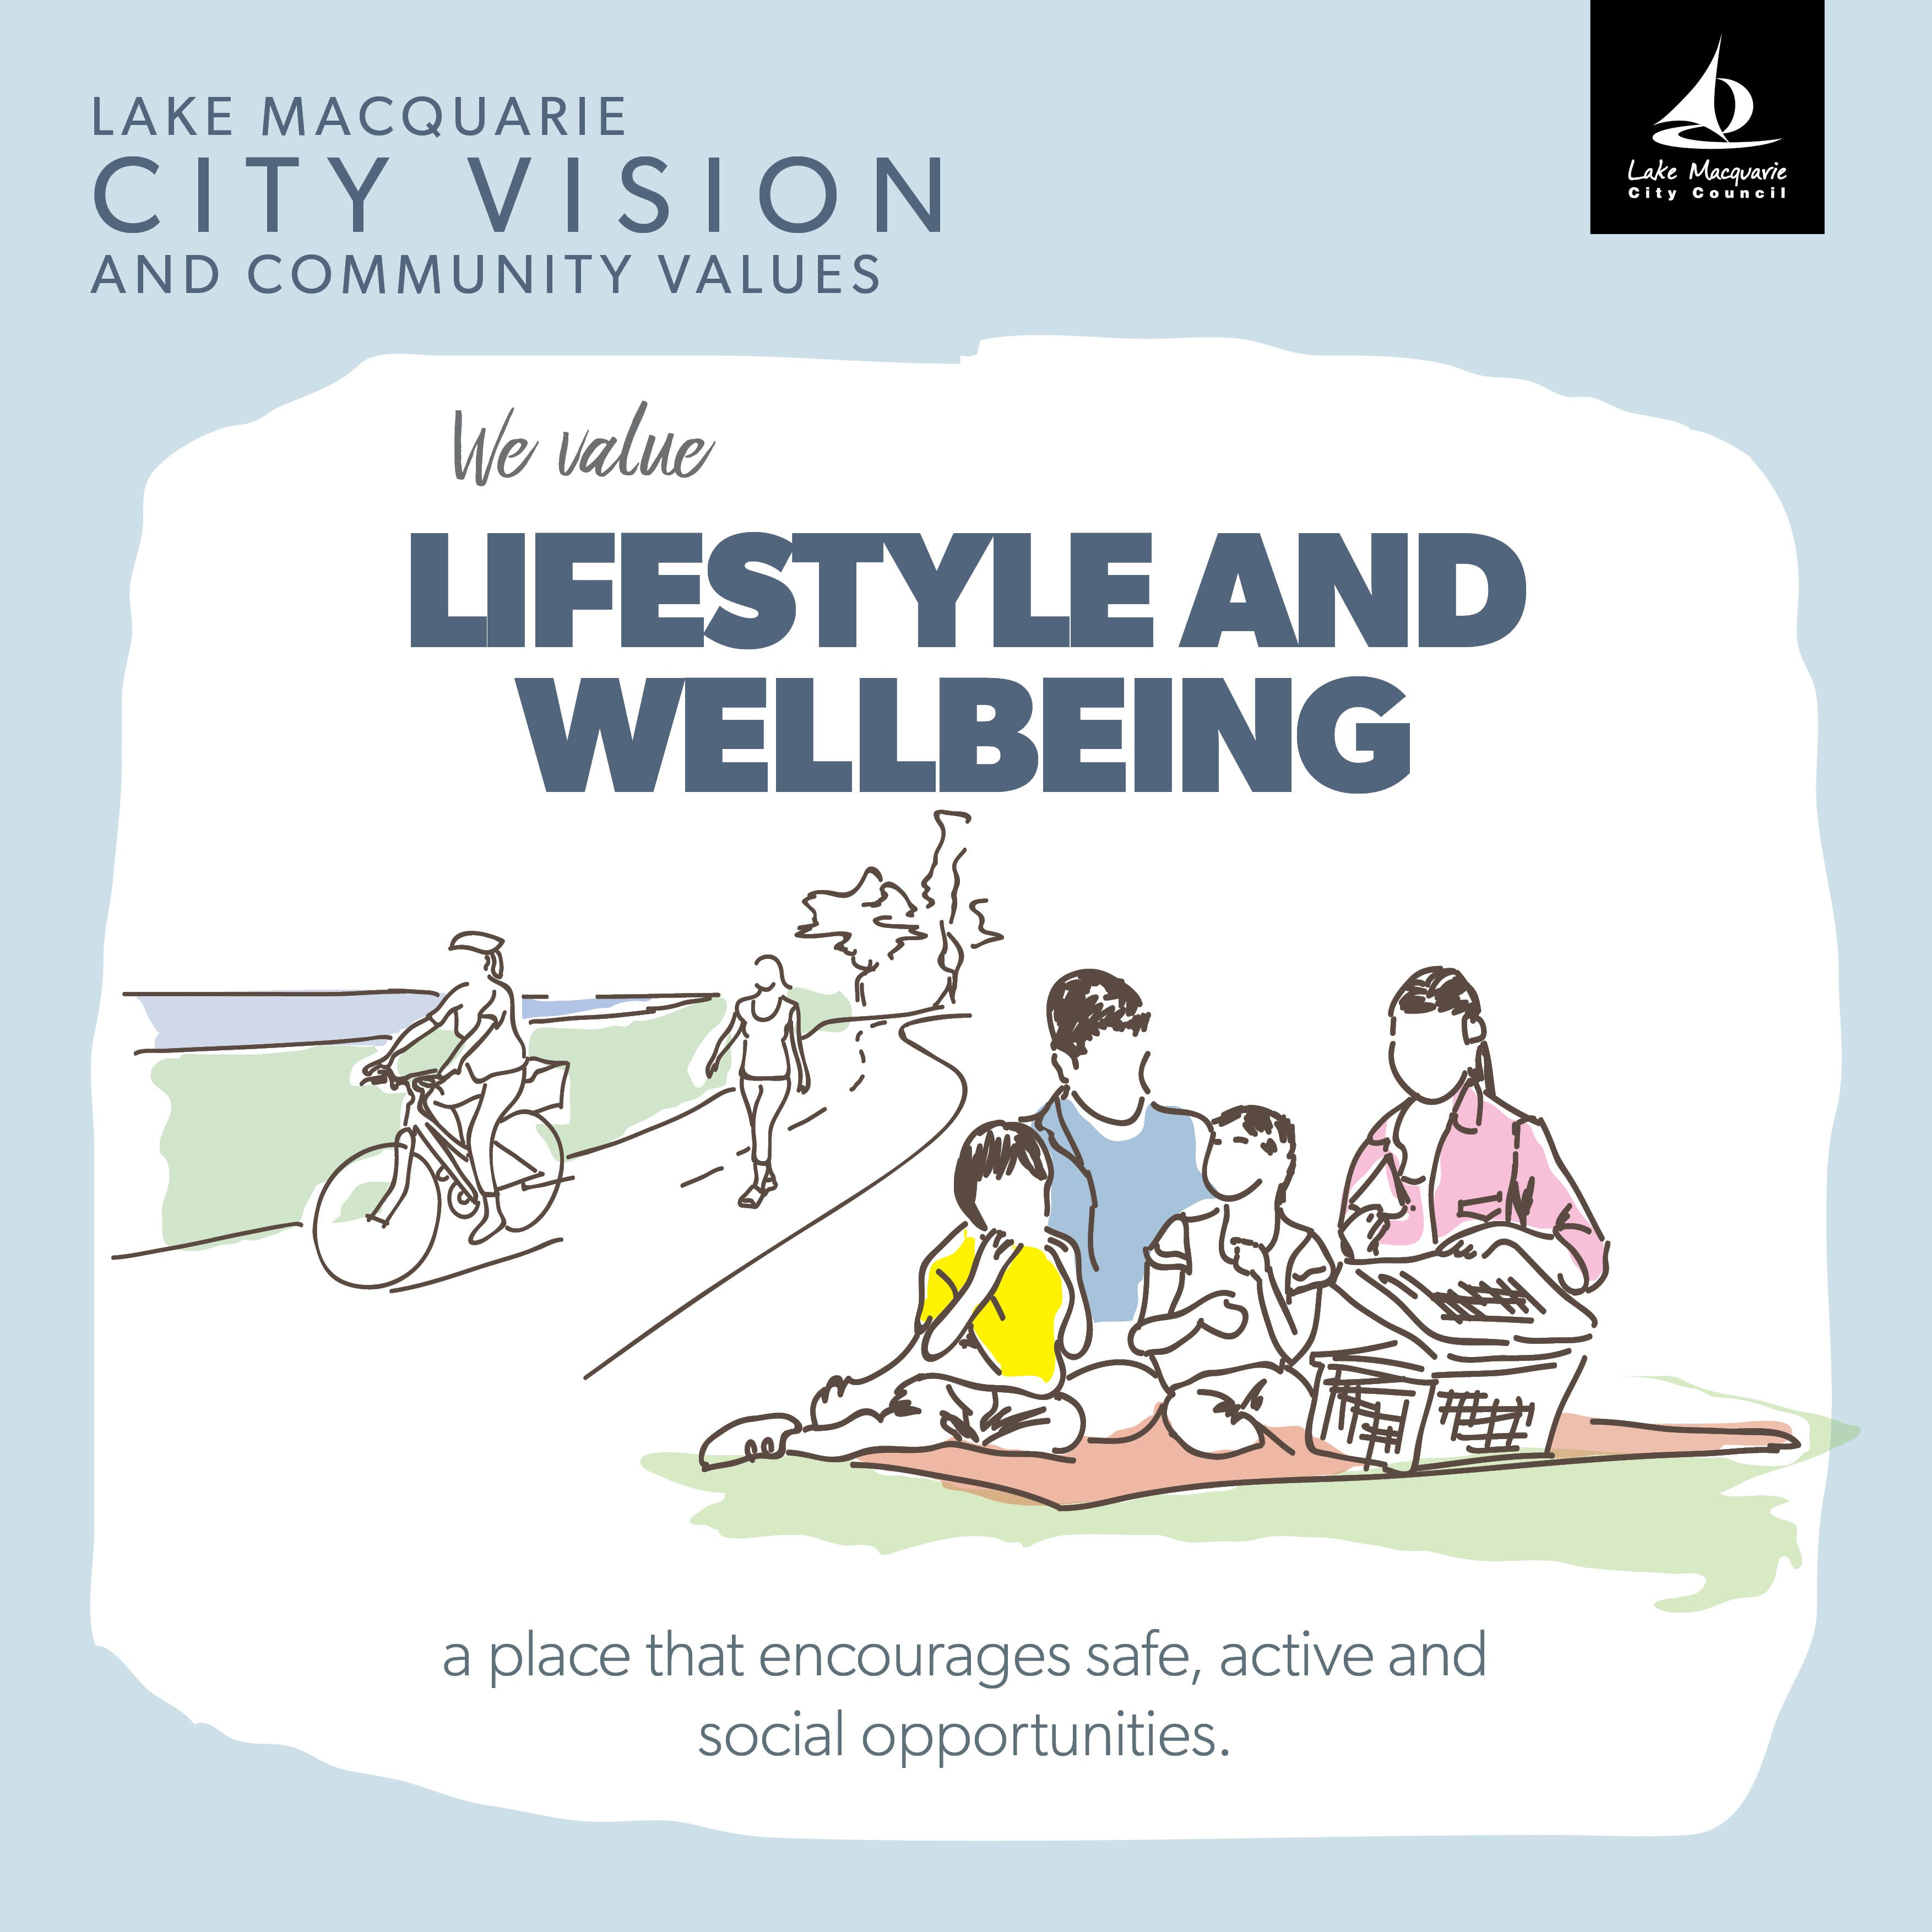 lifestyle and wellbeing